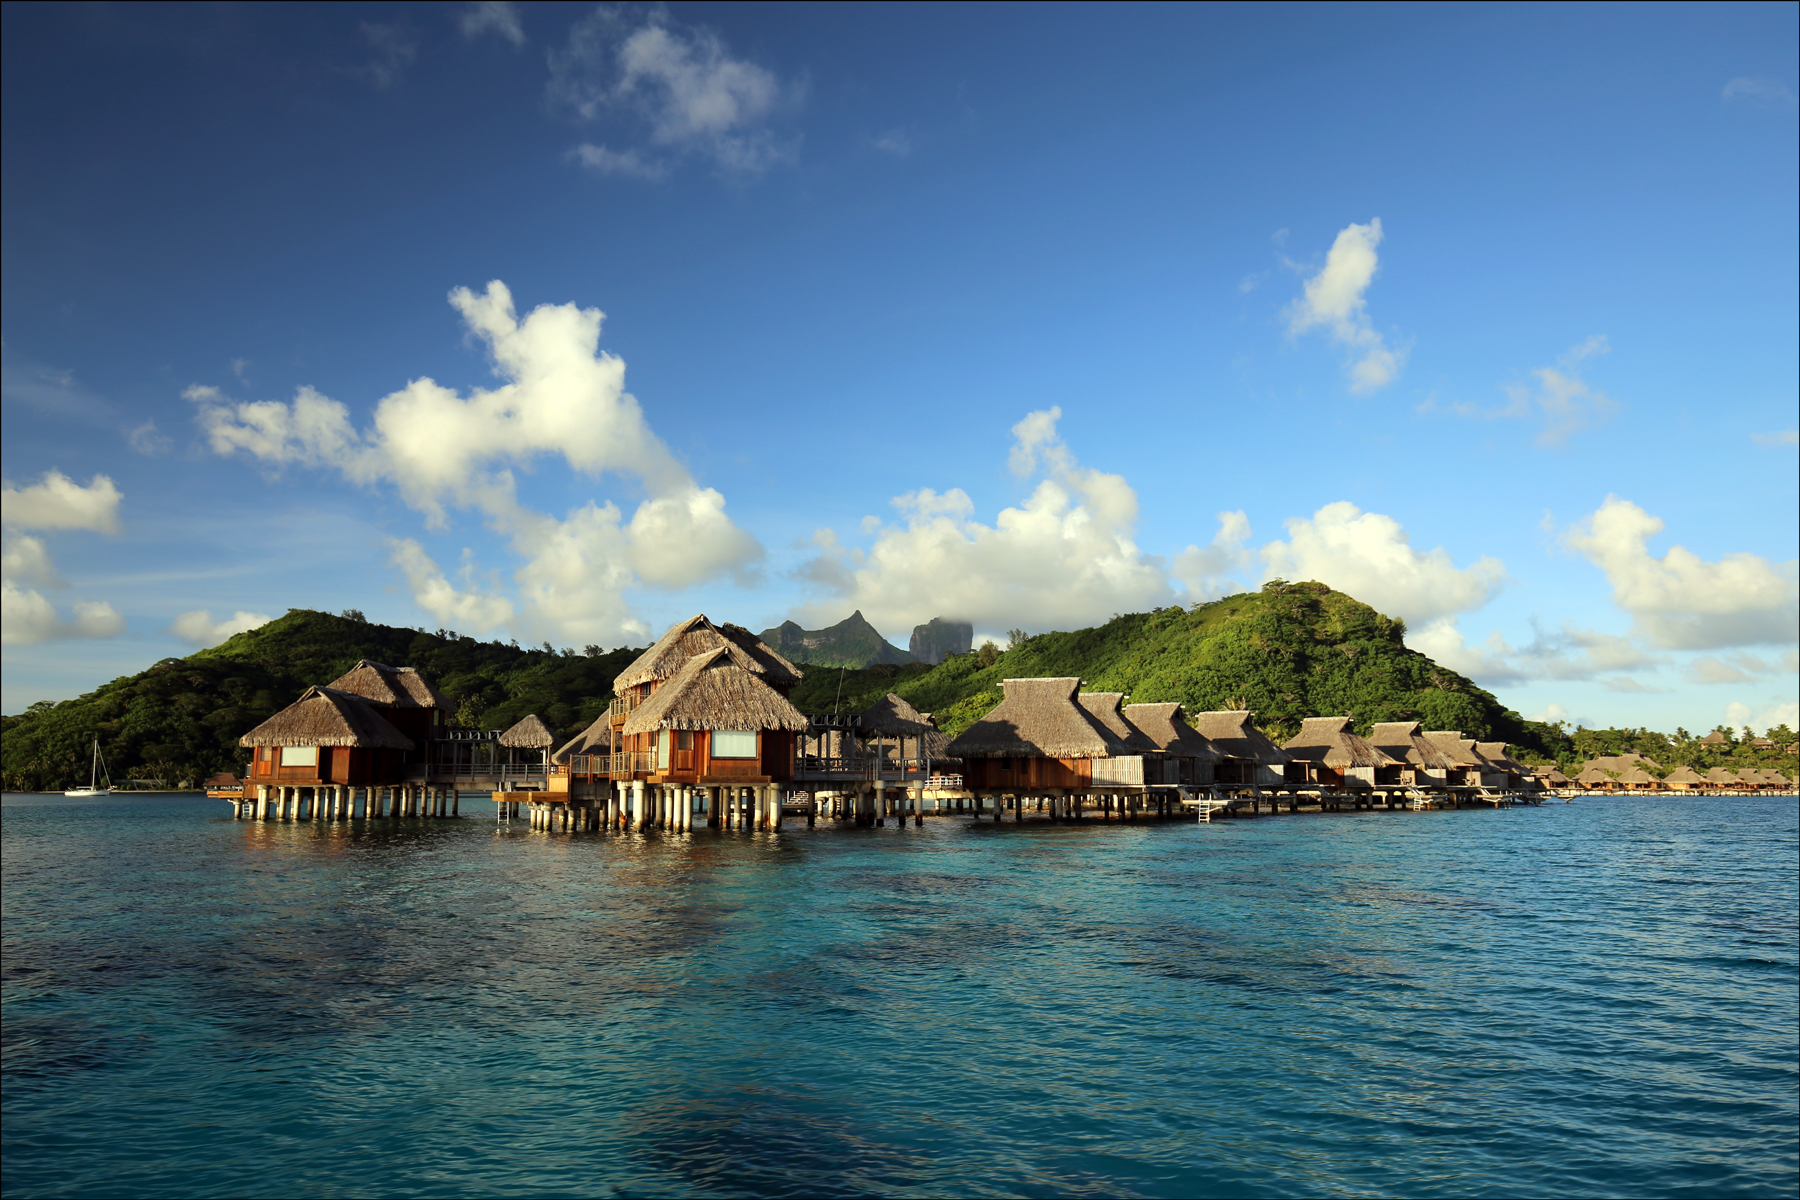 Detail of Overwater Villas at the Hilton Bora Bora Nui Resort and Spa